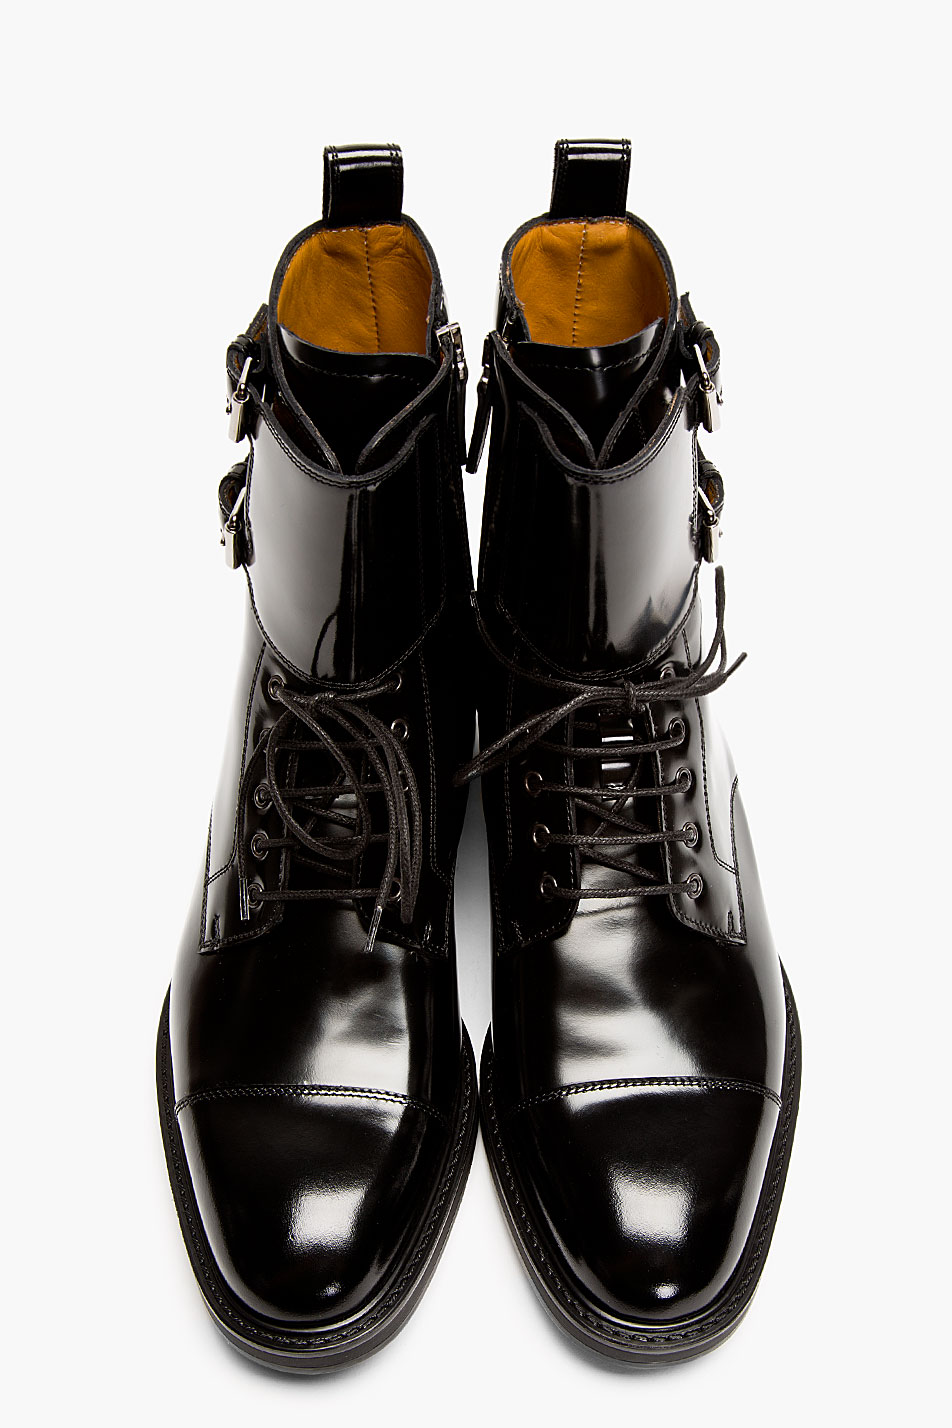 Lyst Valentino Black Patent Leather Buckled Stud Boots